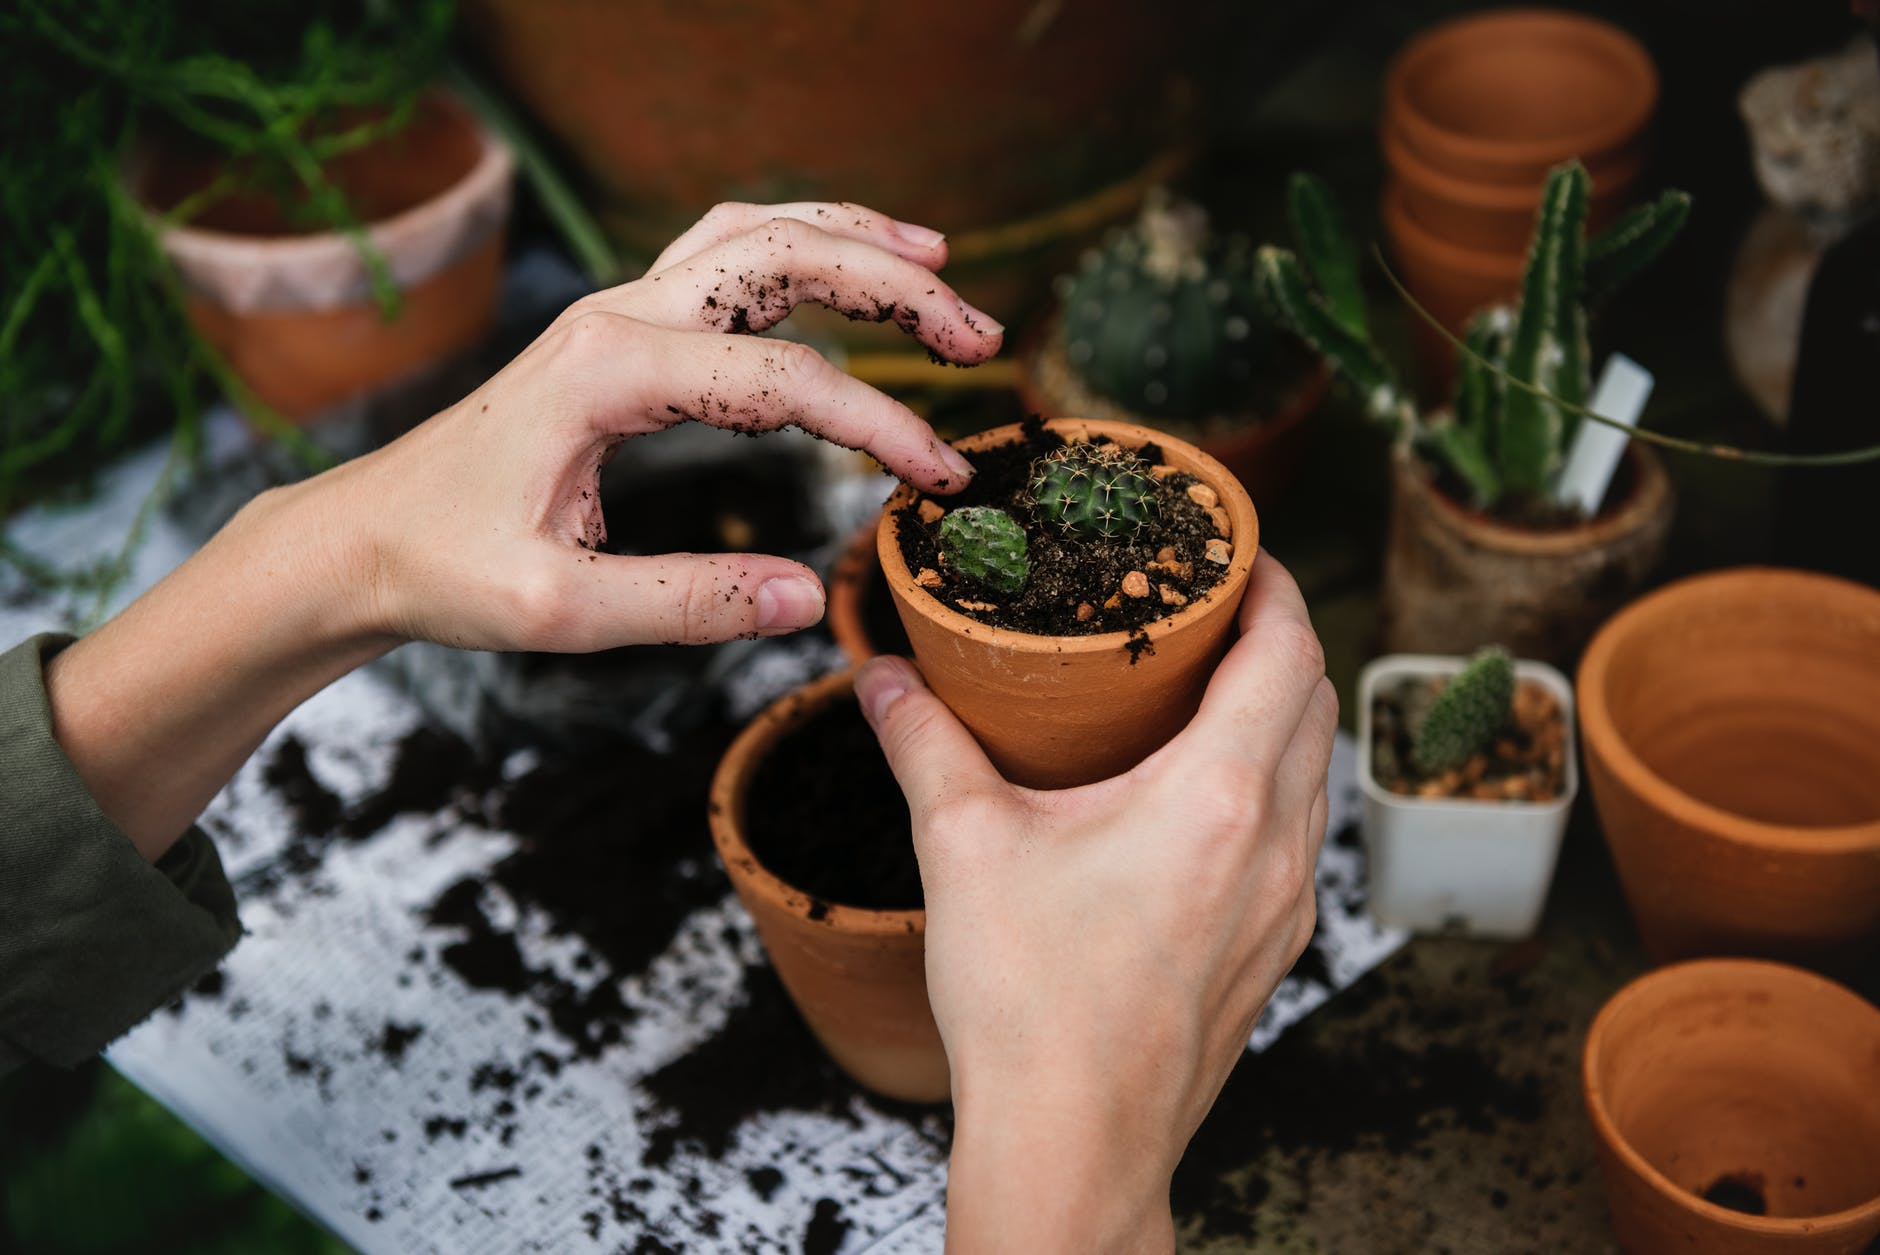 @projectfairytale: Helping Your Garden to Thrive in Colder Temperatures